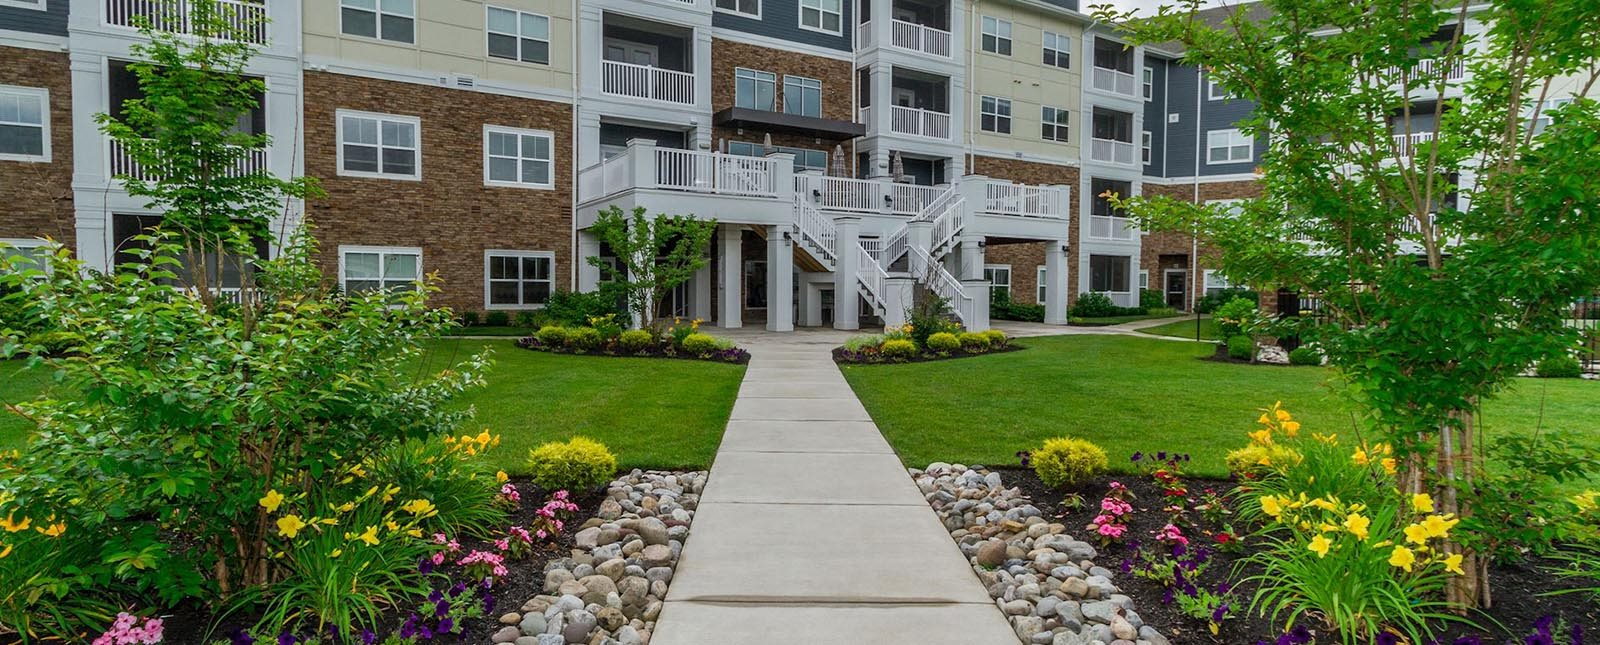 Courtyard of The Haven luxury apartments in Malvern, PA